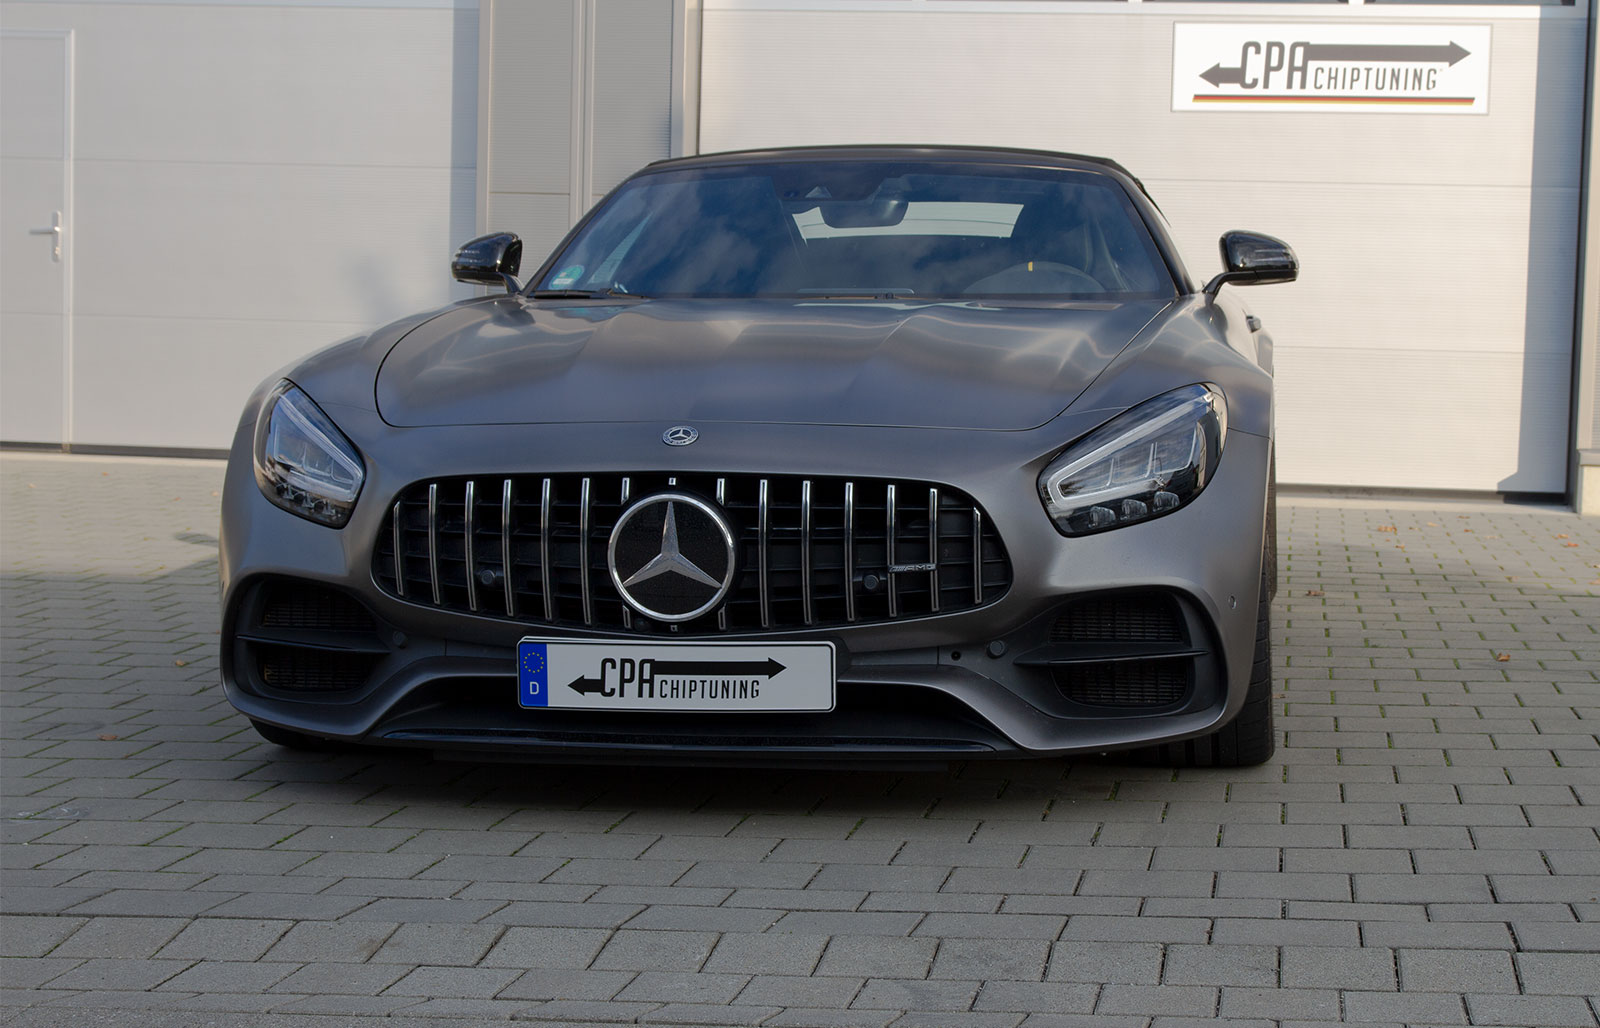 Chiptuning pre Mercedes-AMG GT (C190) AMG GT C.